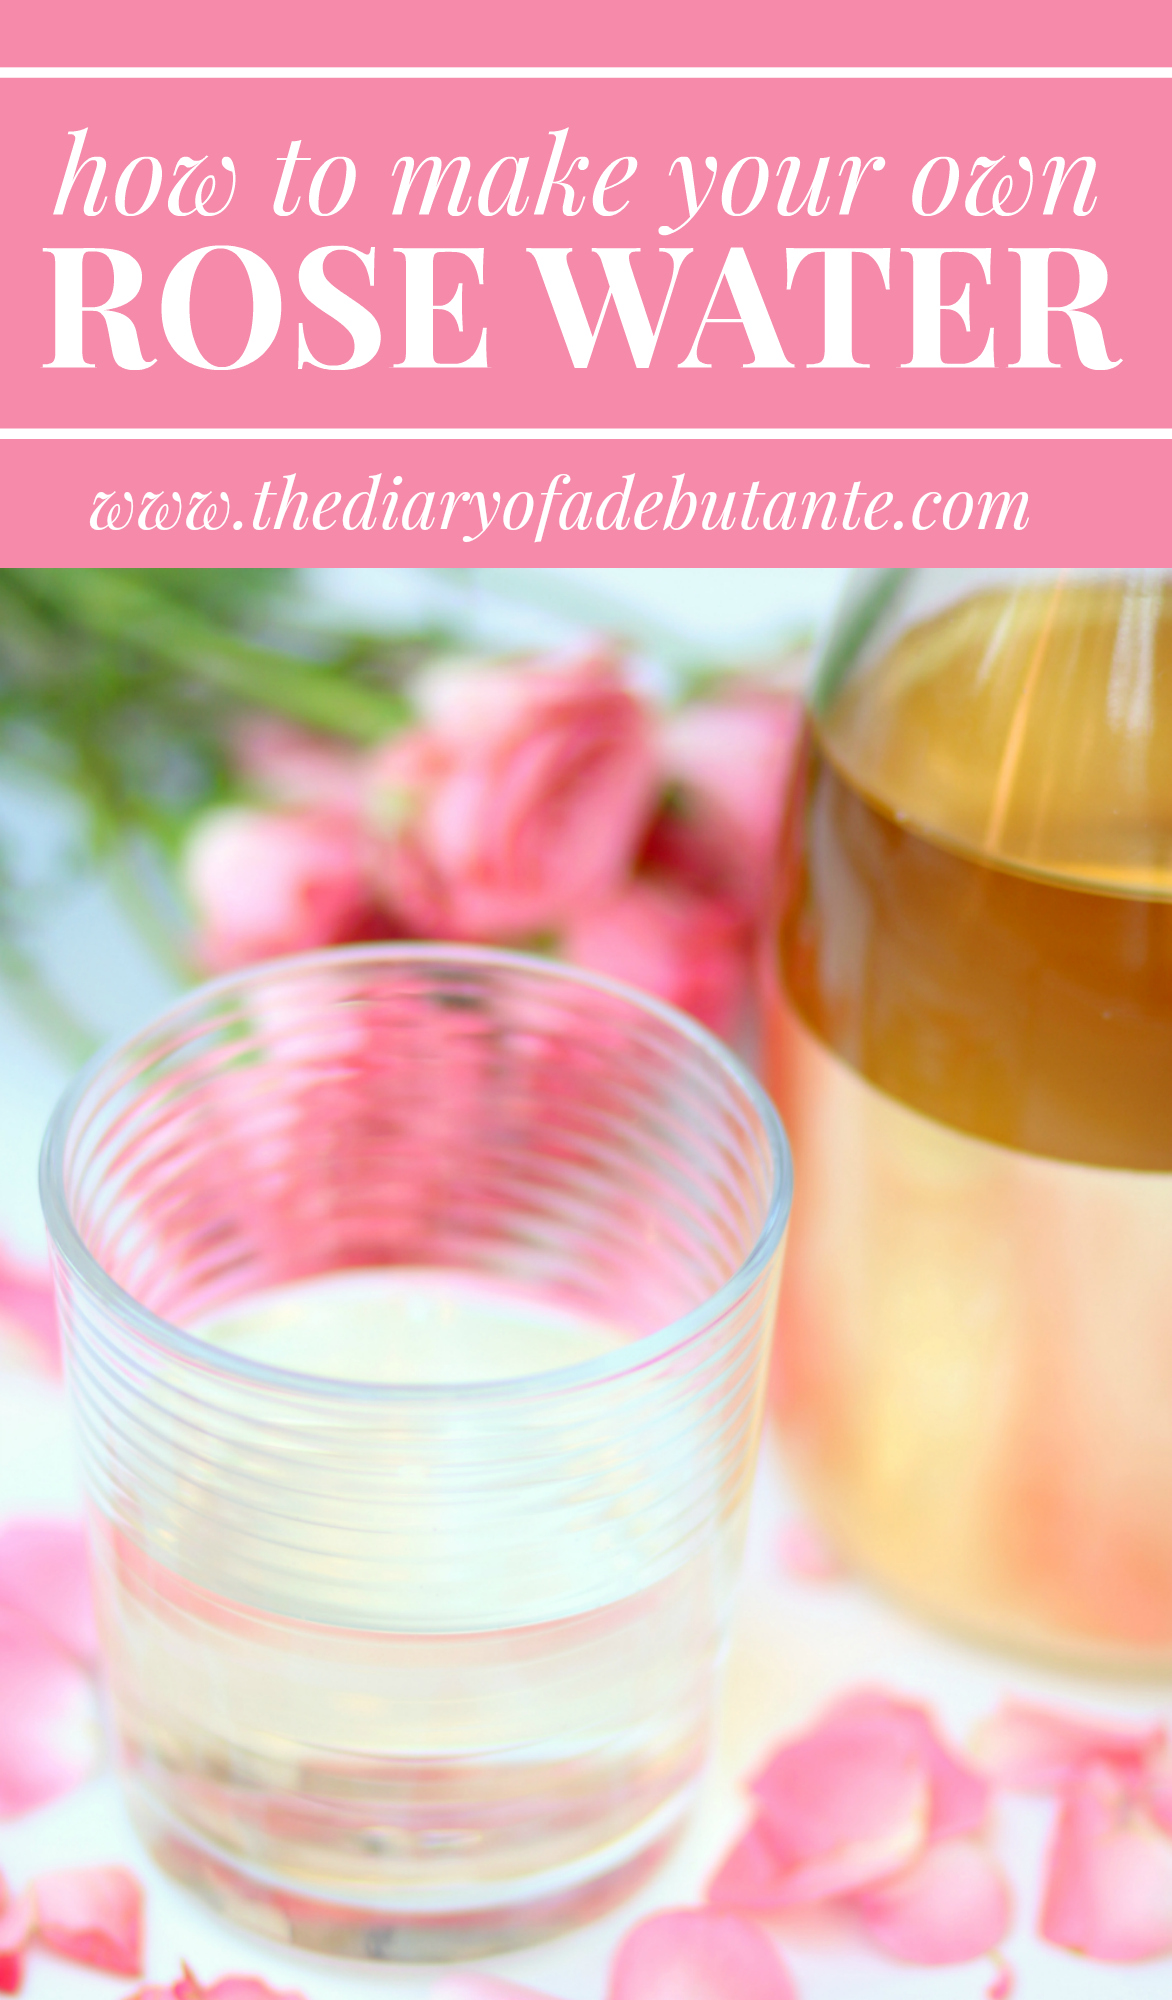 How to make rose water at home with fresh rose petals